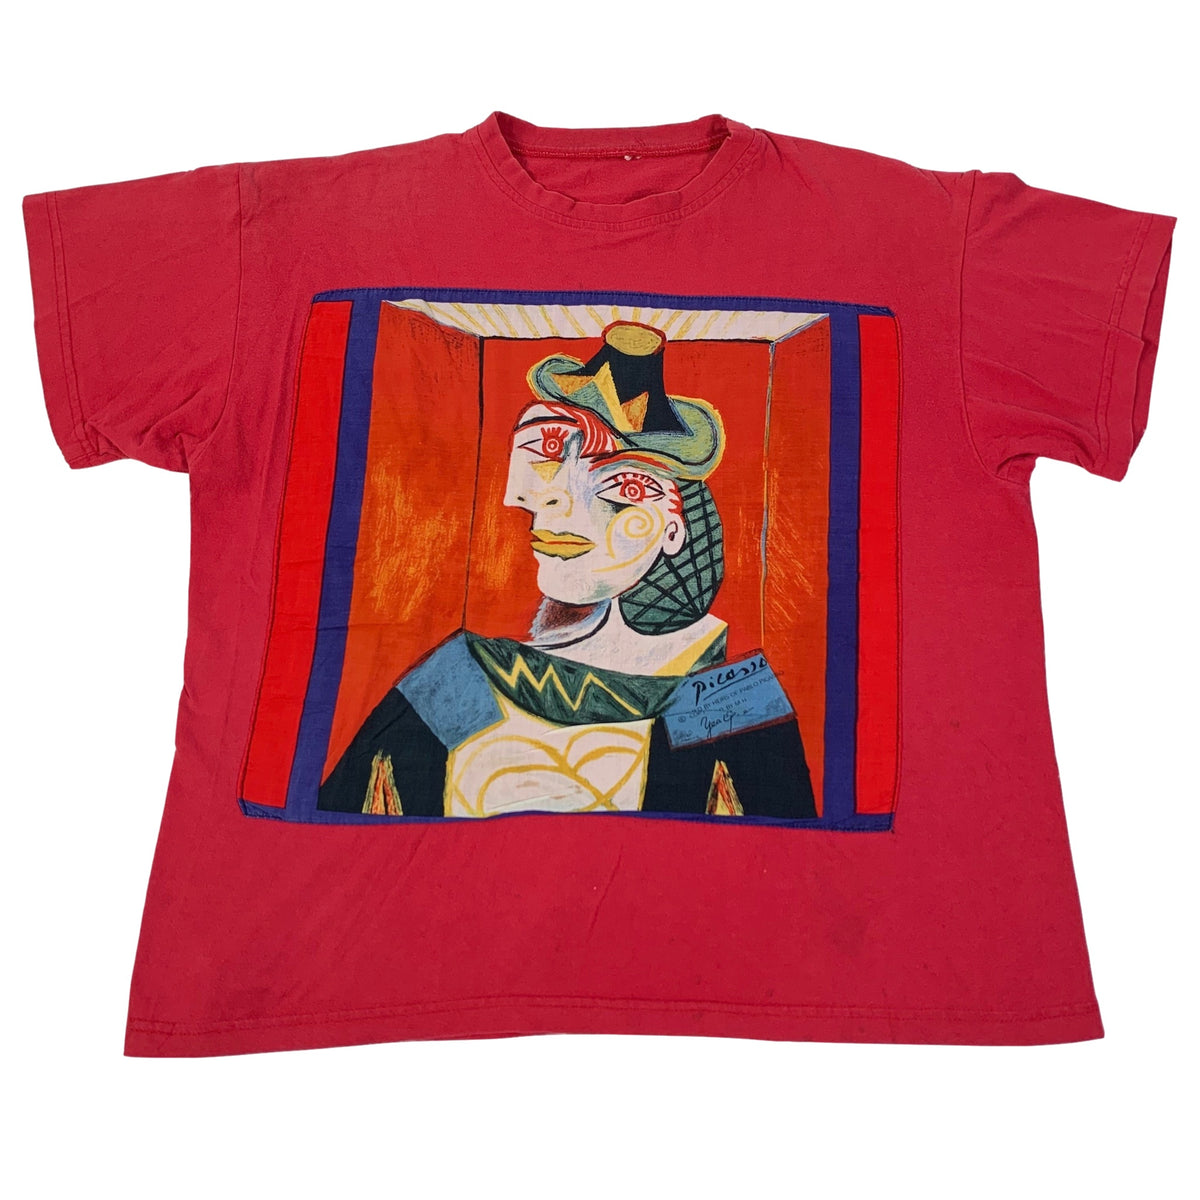 "Vintage Picasso ""Seated Woman"" T-Shirt"